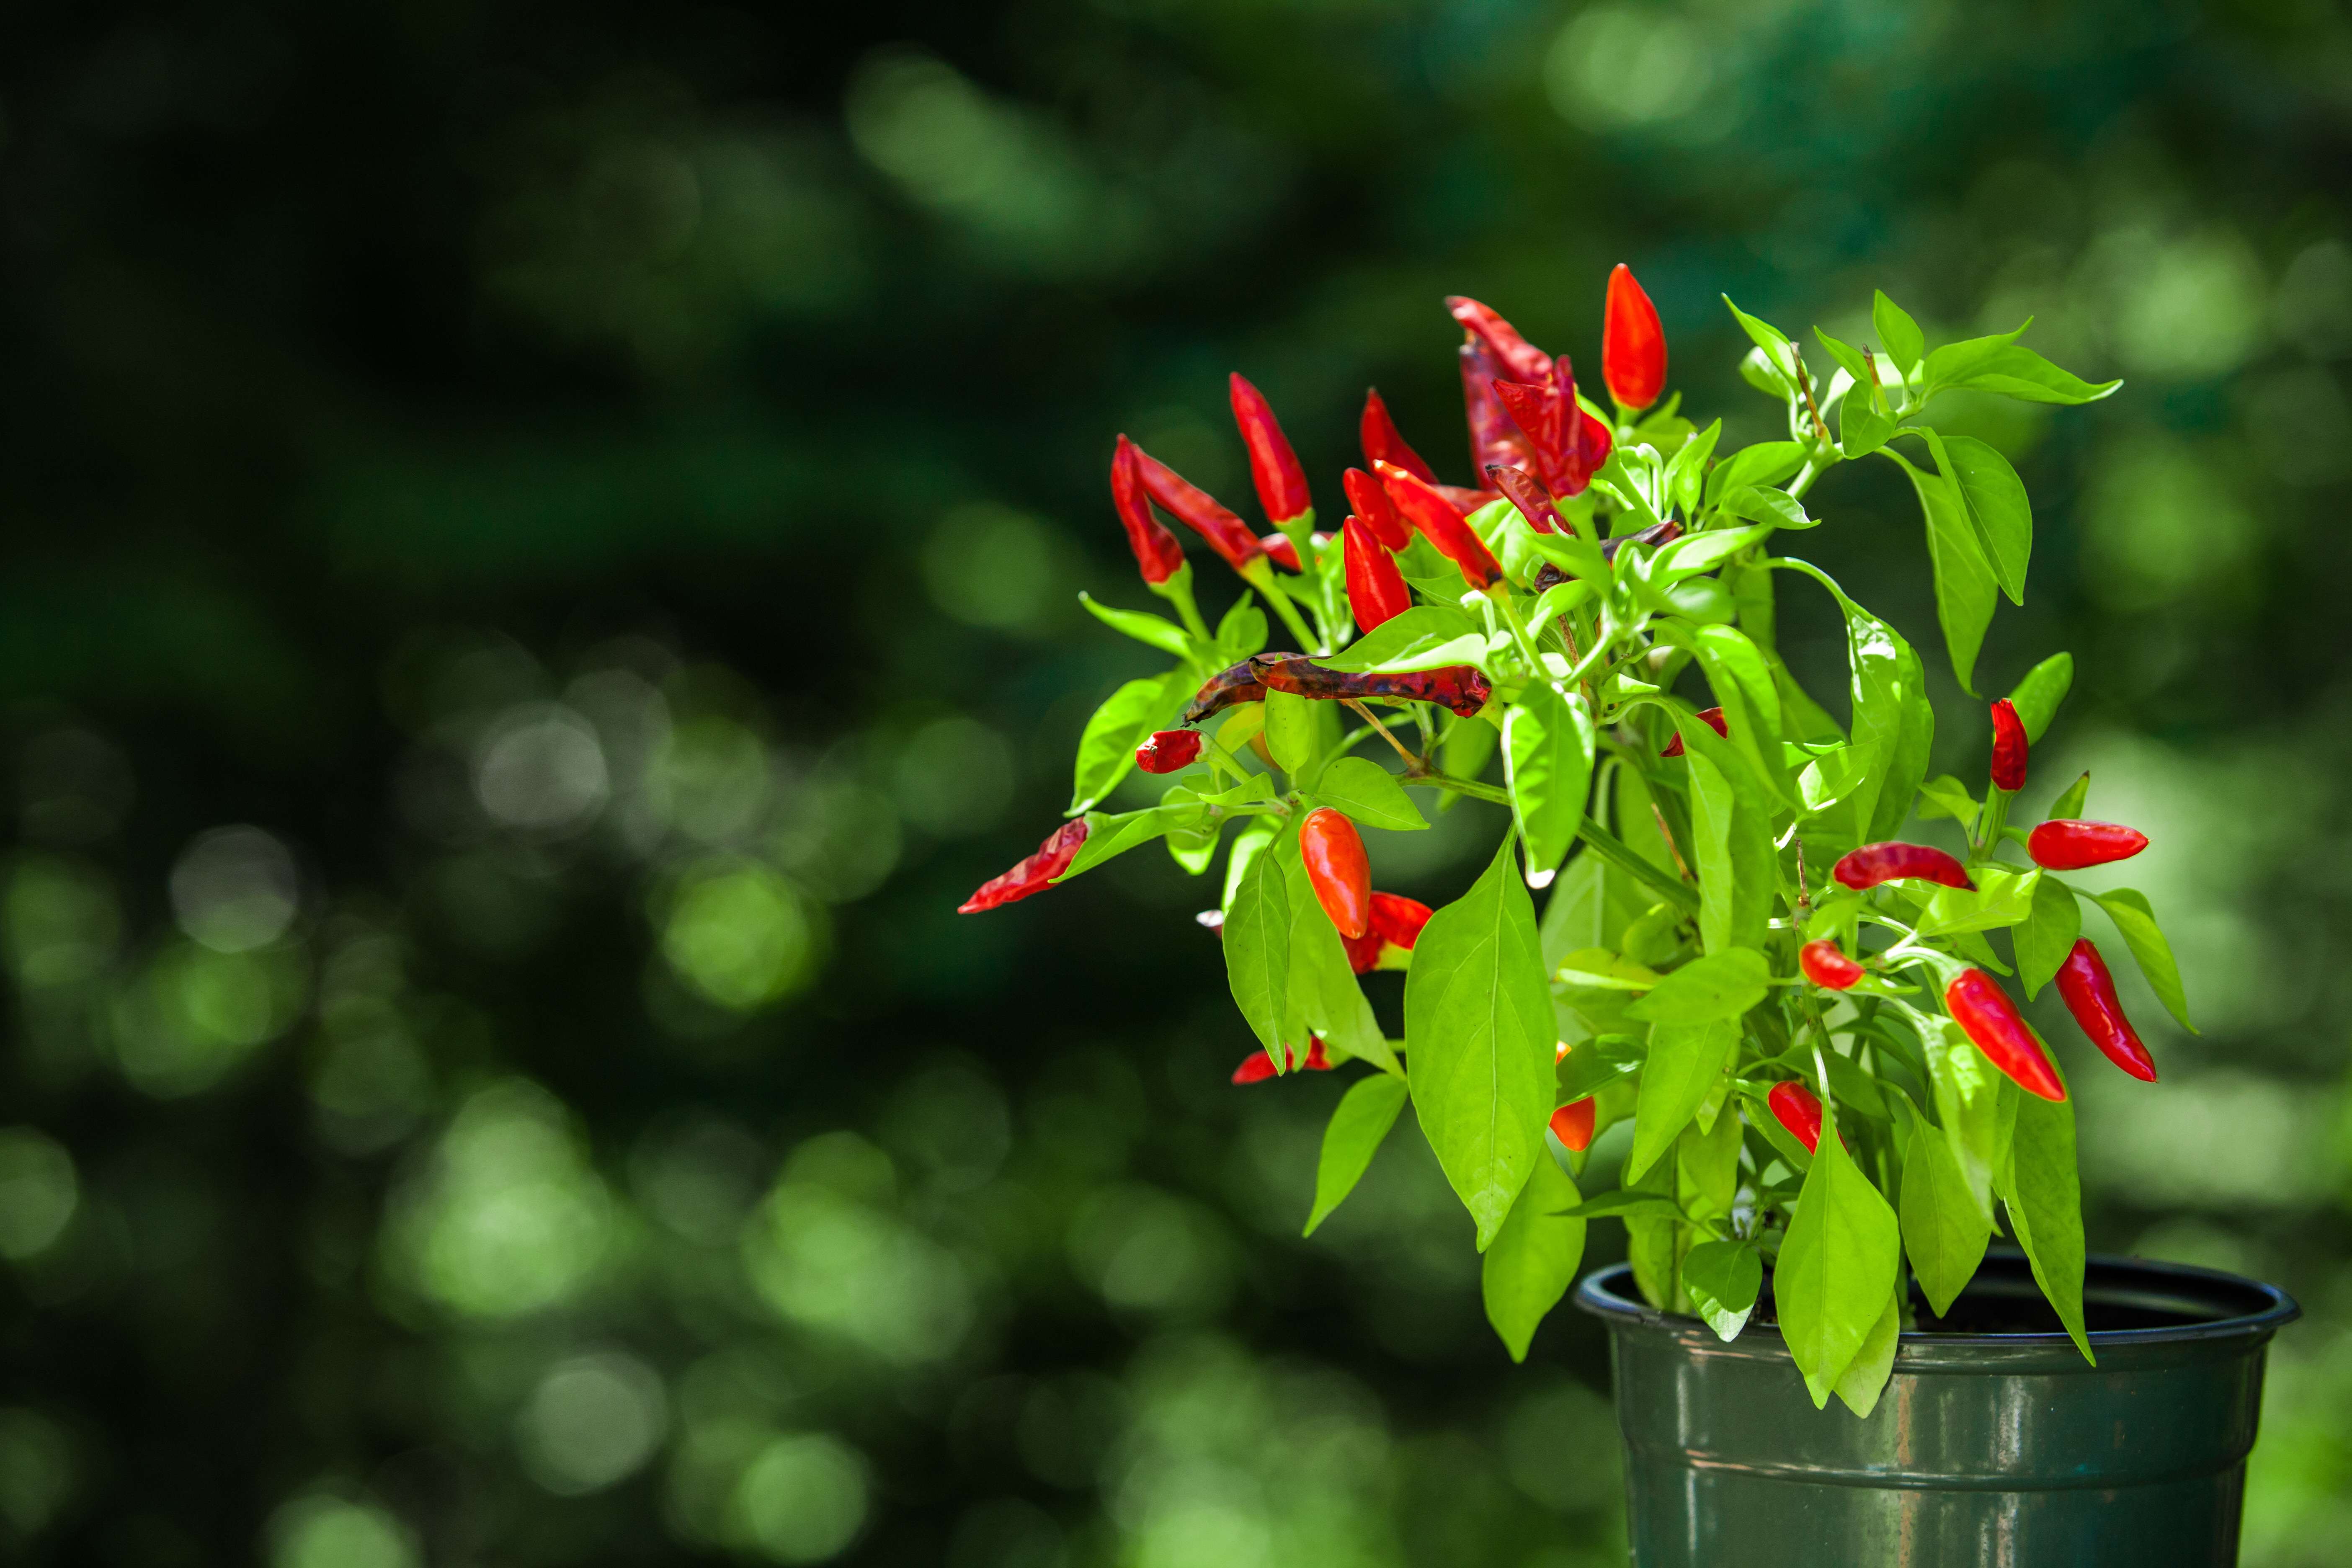 Red chili plant pictured with blurry green background - 1/2 - Pictured outdoors at the sunset with a macro lens